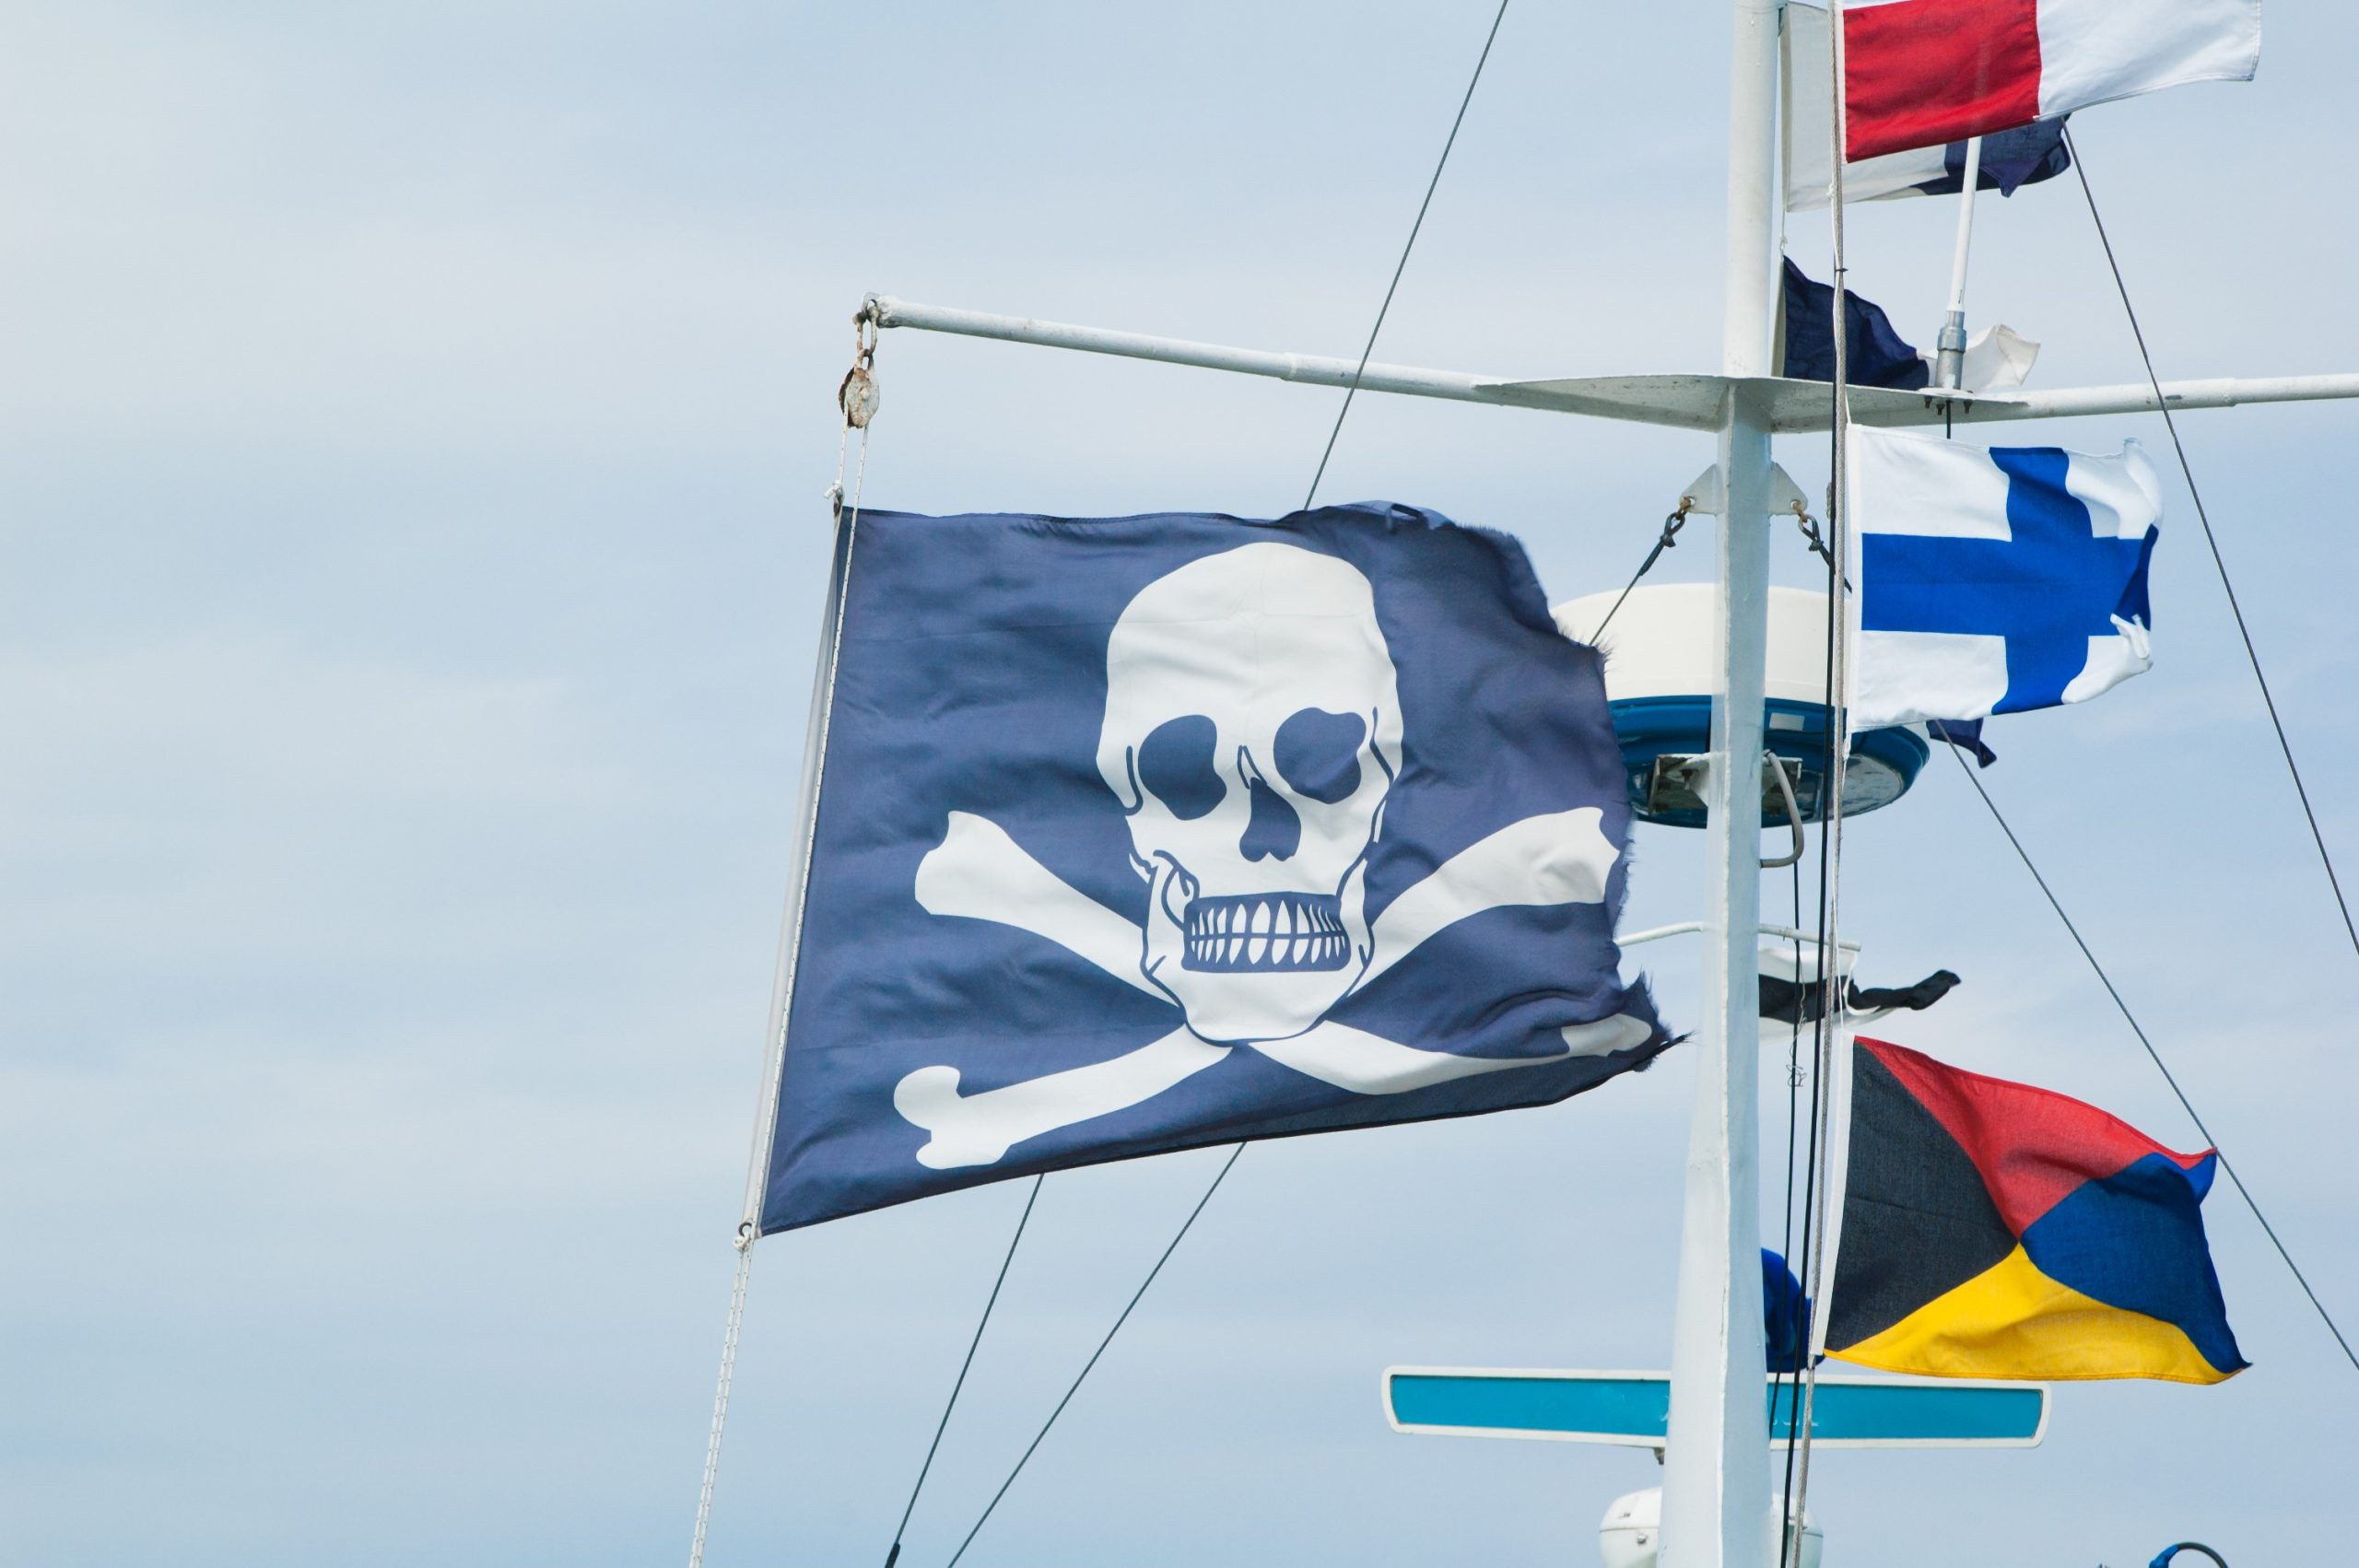 Maritime crime and role of insurers